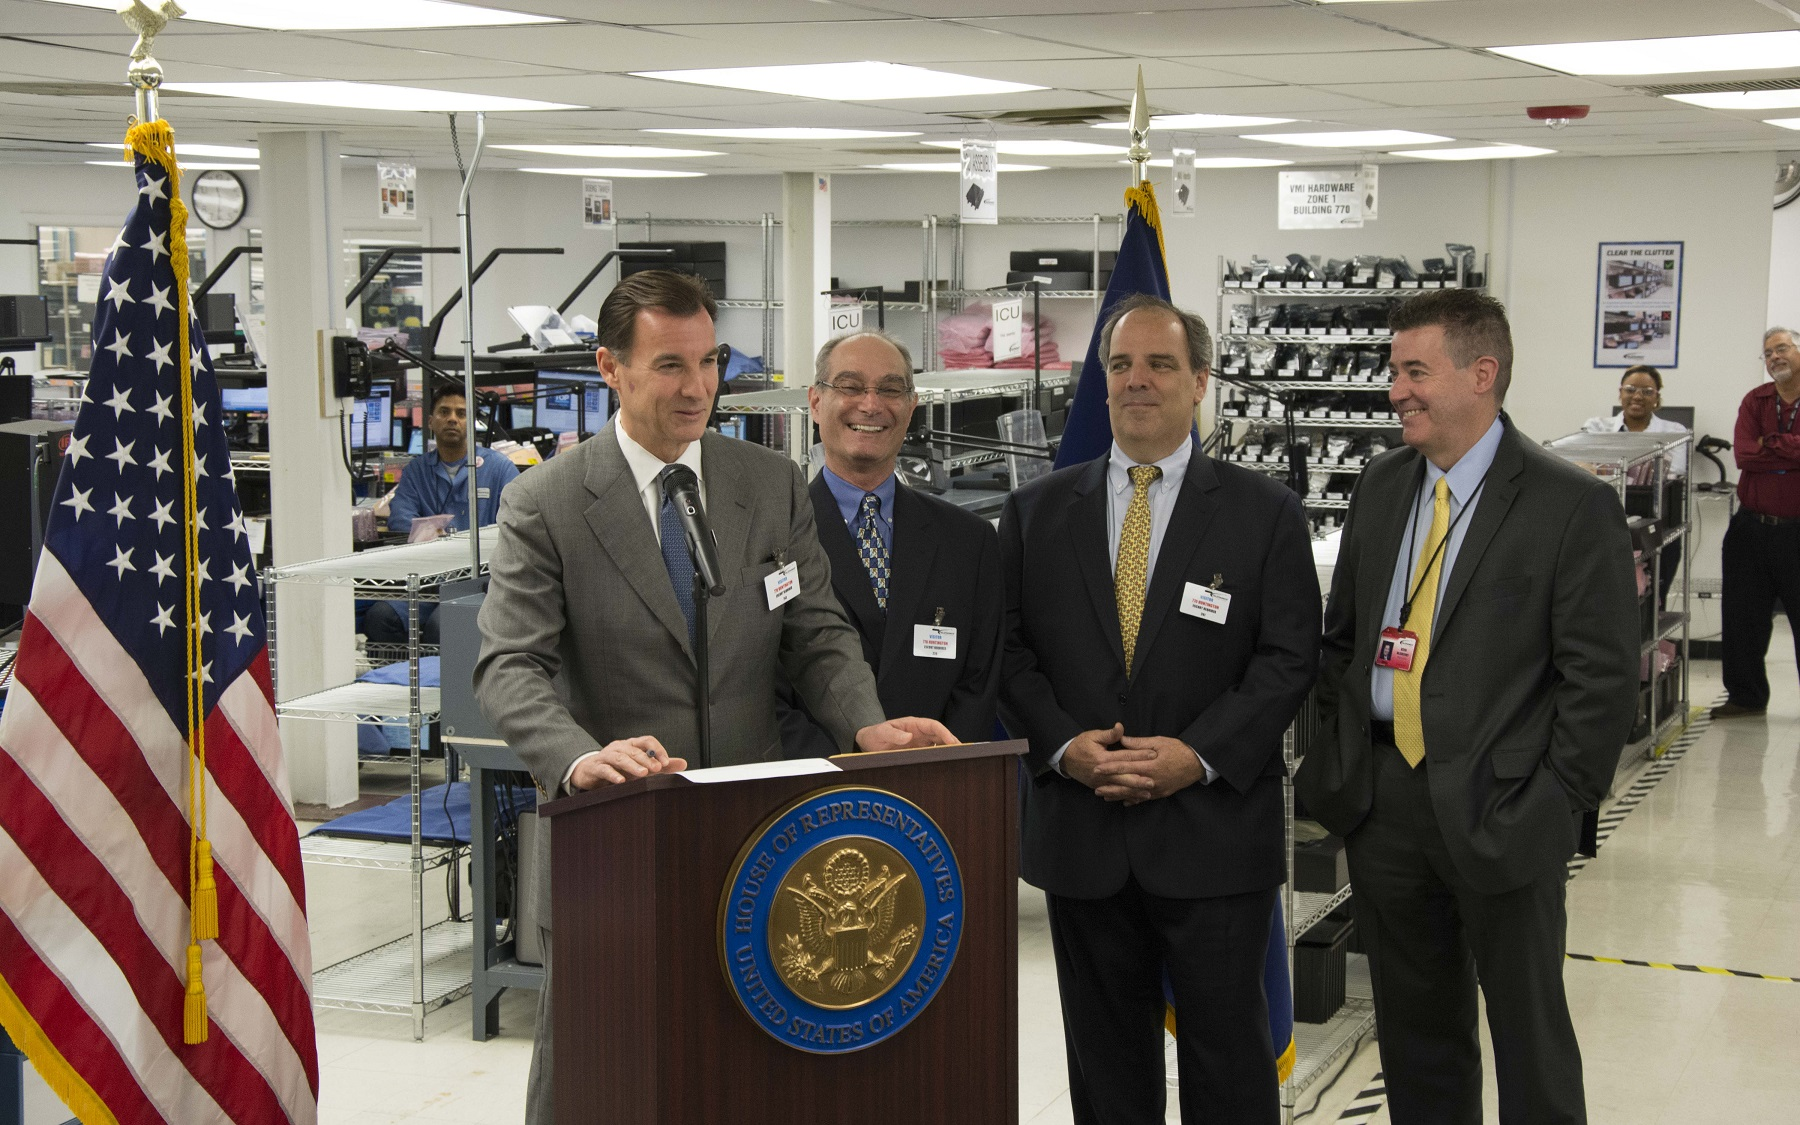 Congressman Suozzi with John Spiezio (Hicksville Machine Works), Kevin McSweeney (Telephonics) and Noel Gibilaro (Hitemco)